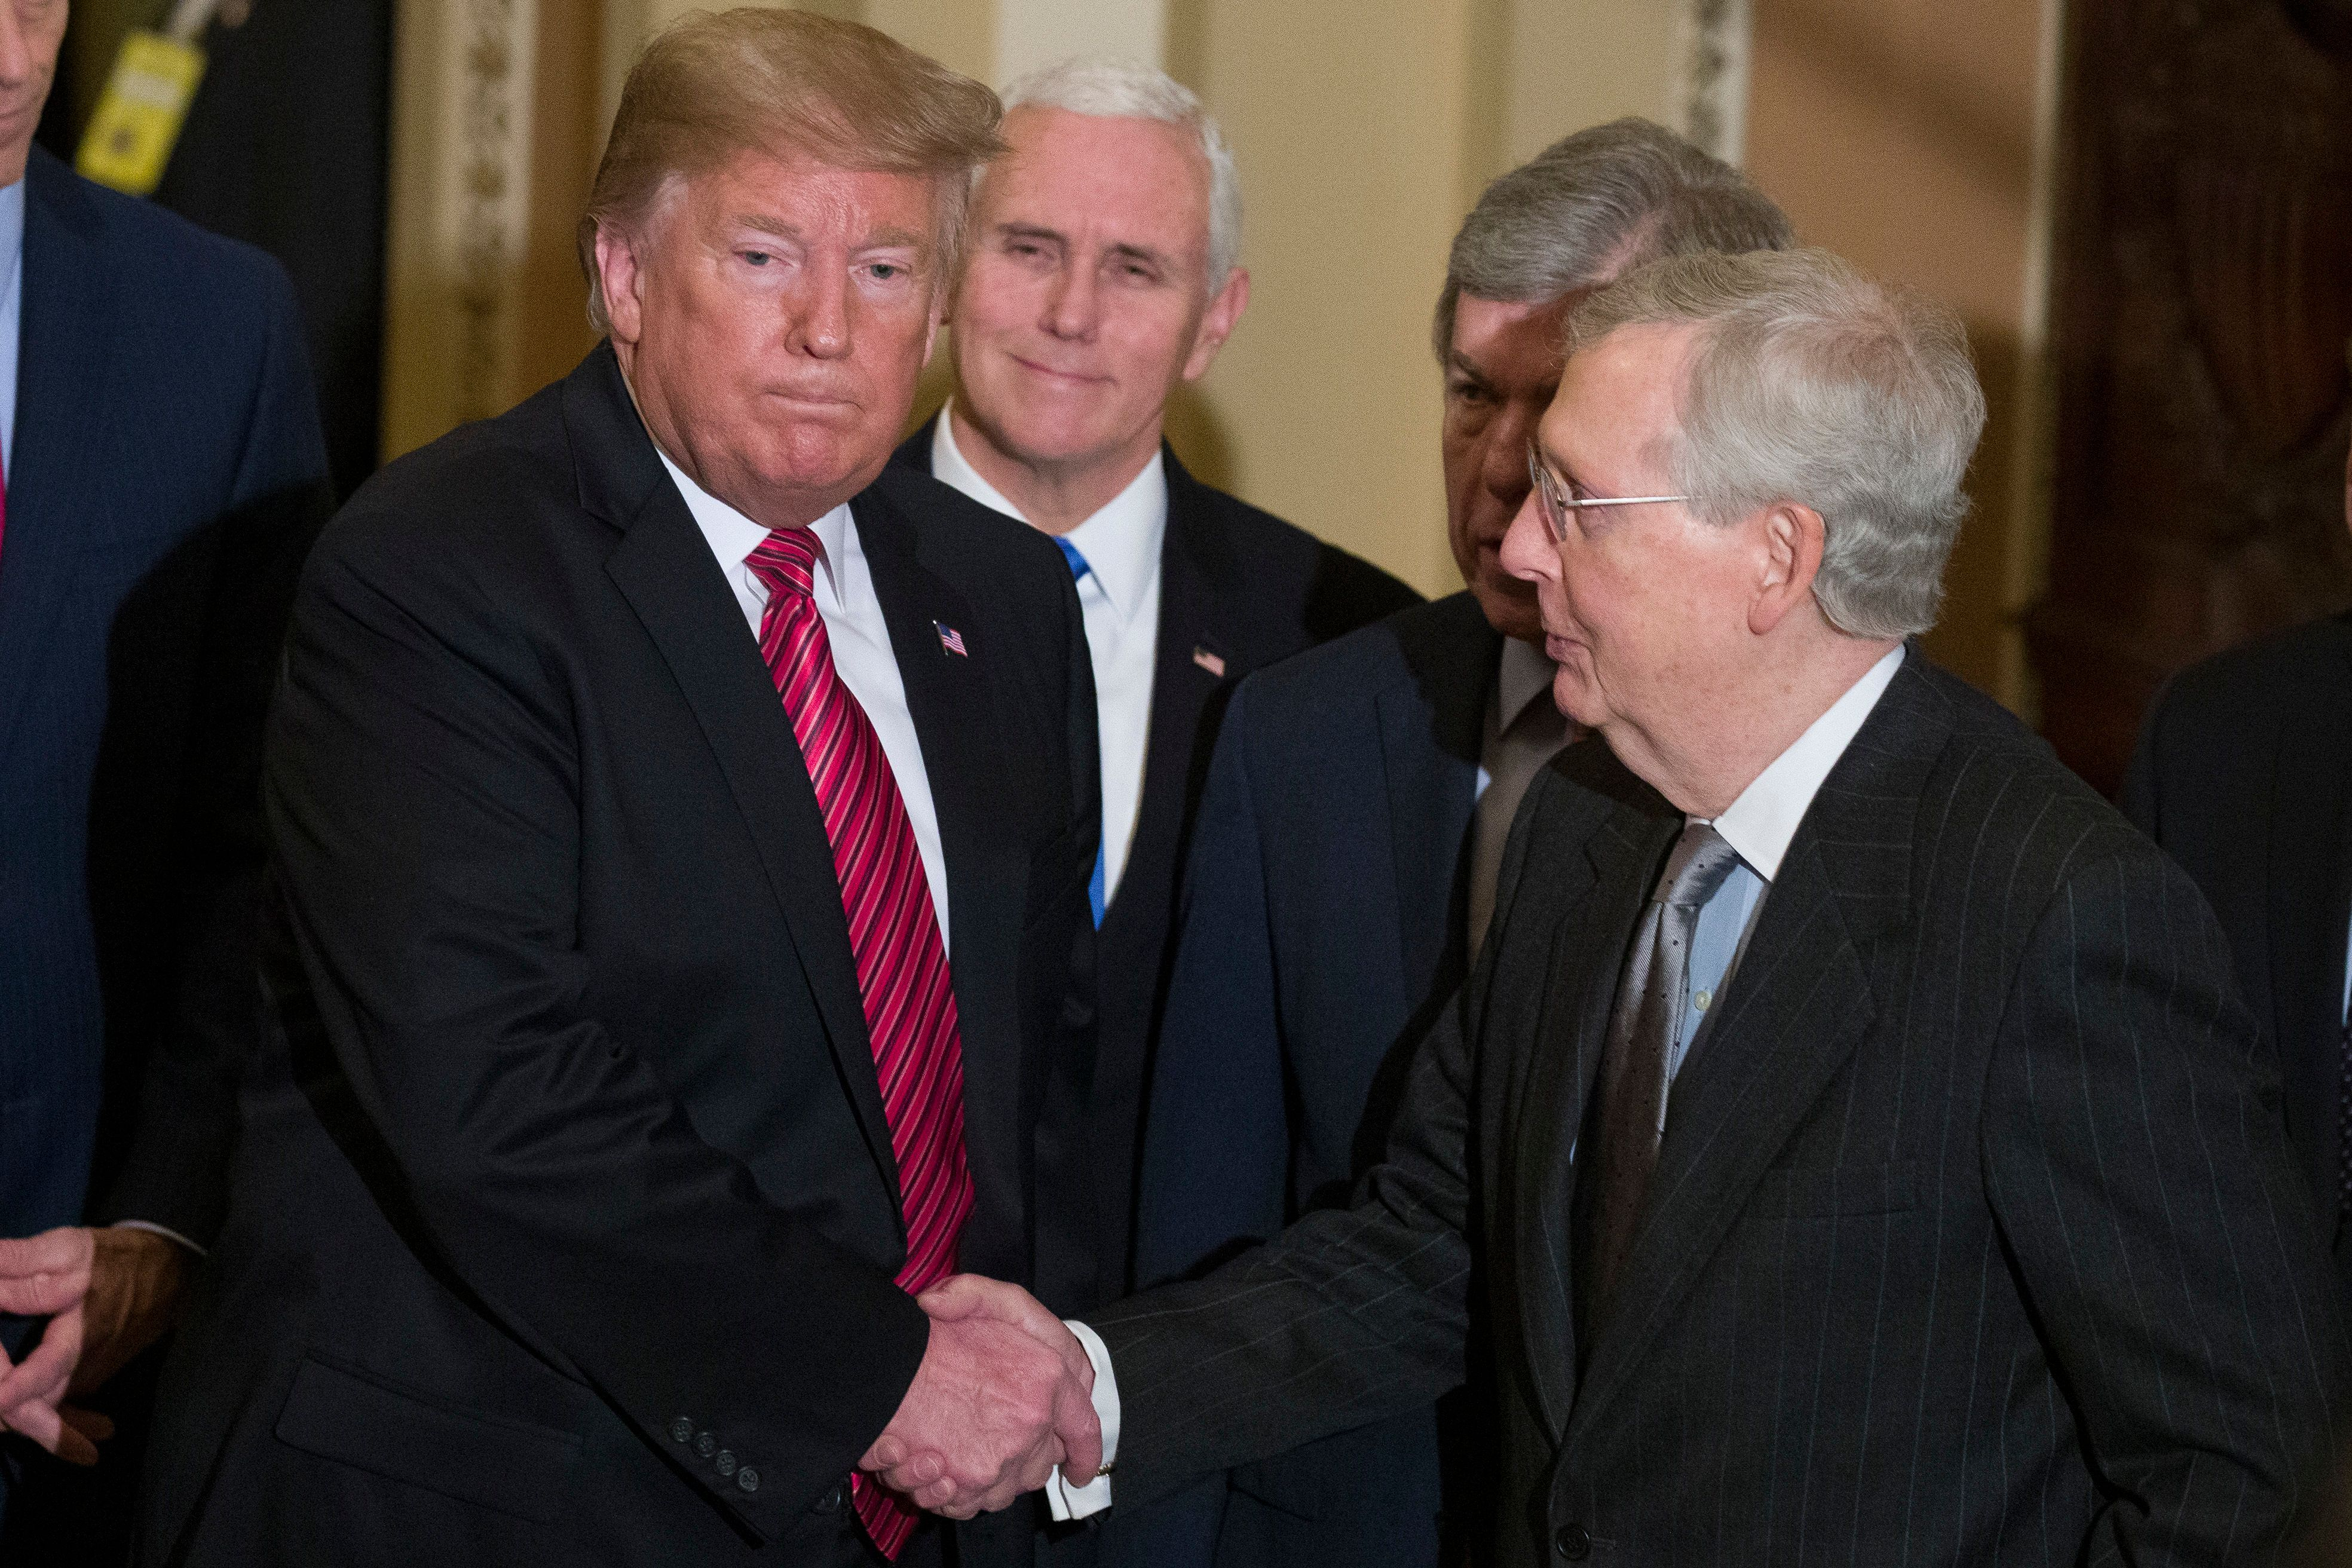 President Donald Trump shakes hands with Senate Majority Leader Mitch McConnell of Ky., as he departs accompanied by Vice President Mike Pence after a Senate Republican Policy luncheon, on Capitol Hill in Washington, Wednesday, Jan. 9, 2019. (AP Photo/Alex Brandon)